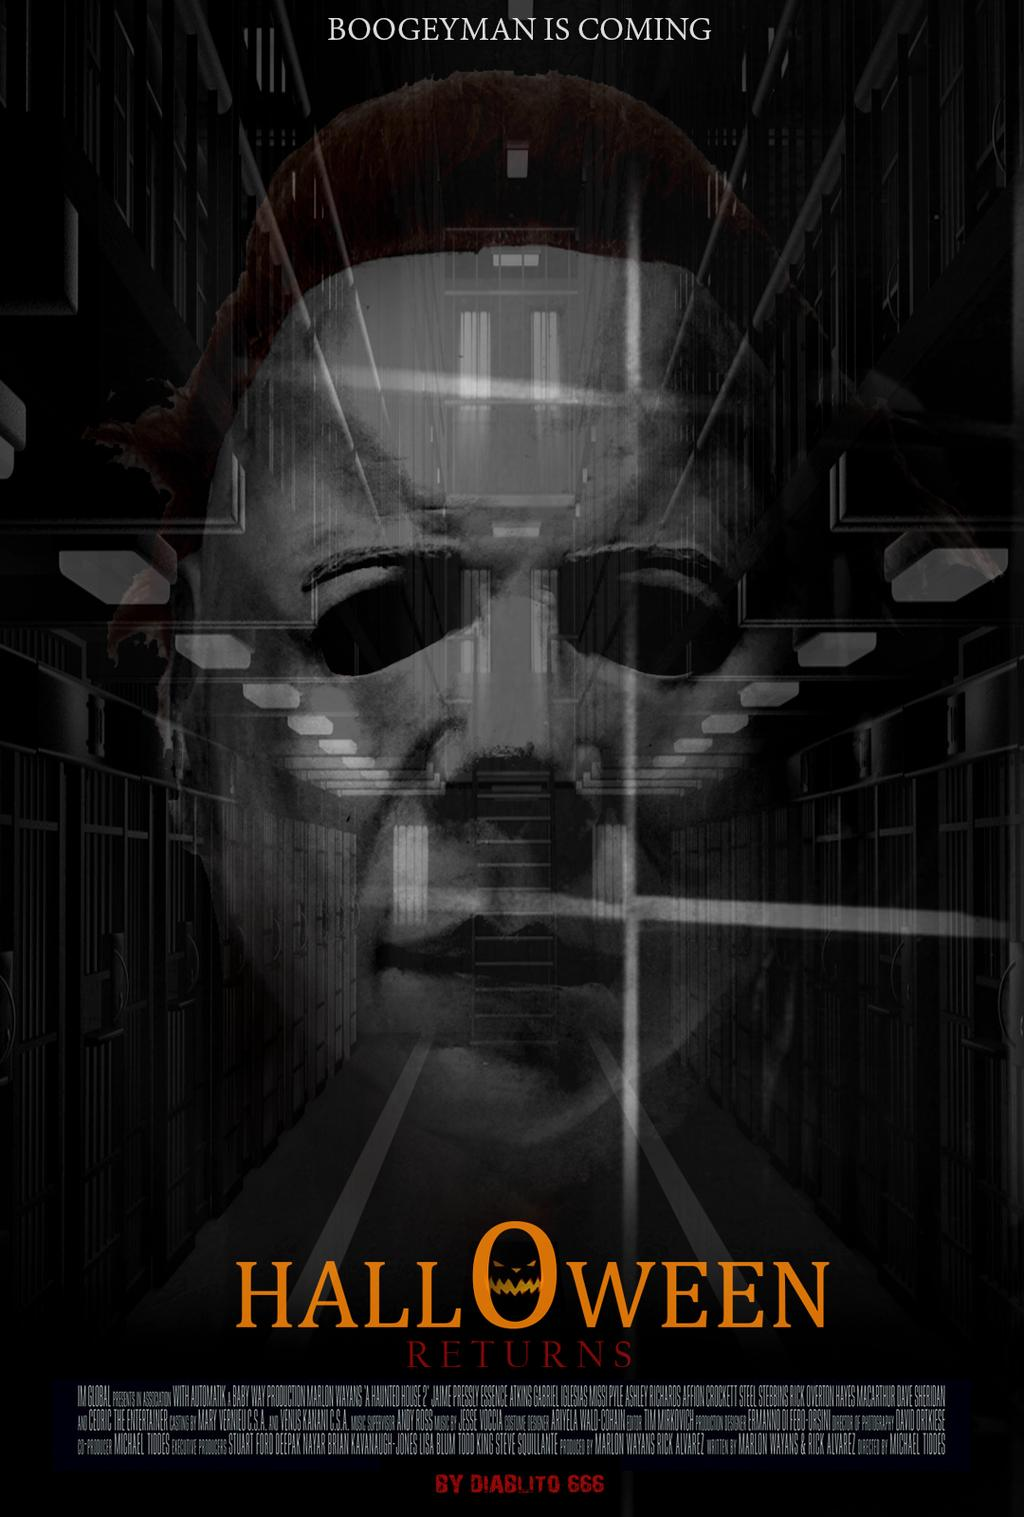 Halloween 2018 Fan Poster.Halloweenreturns On Jumpic Com